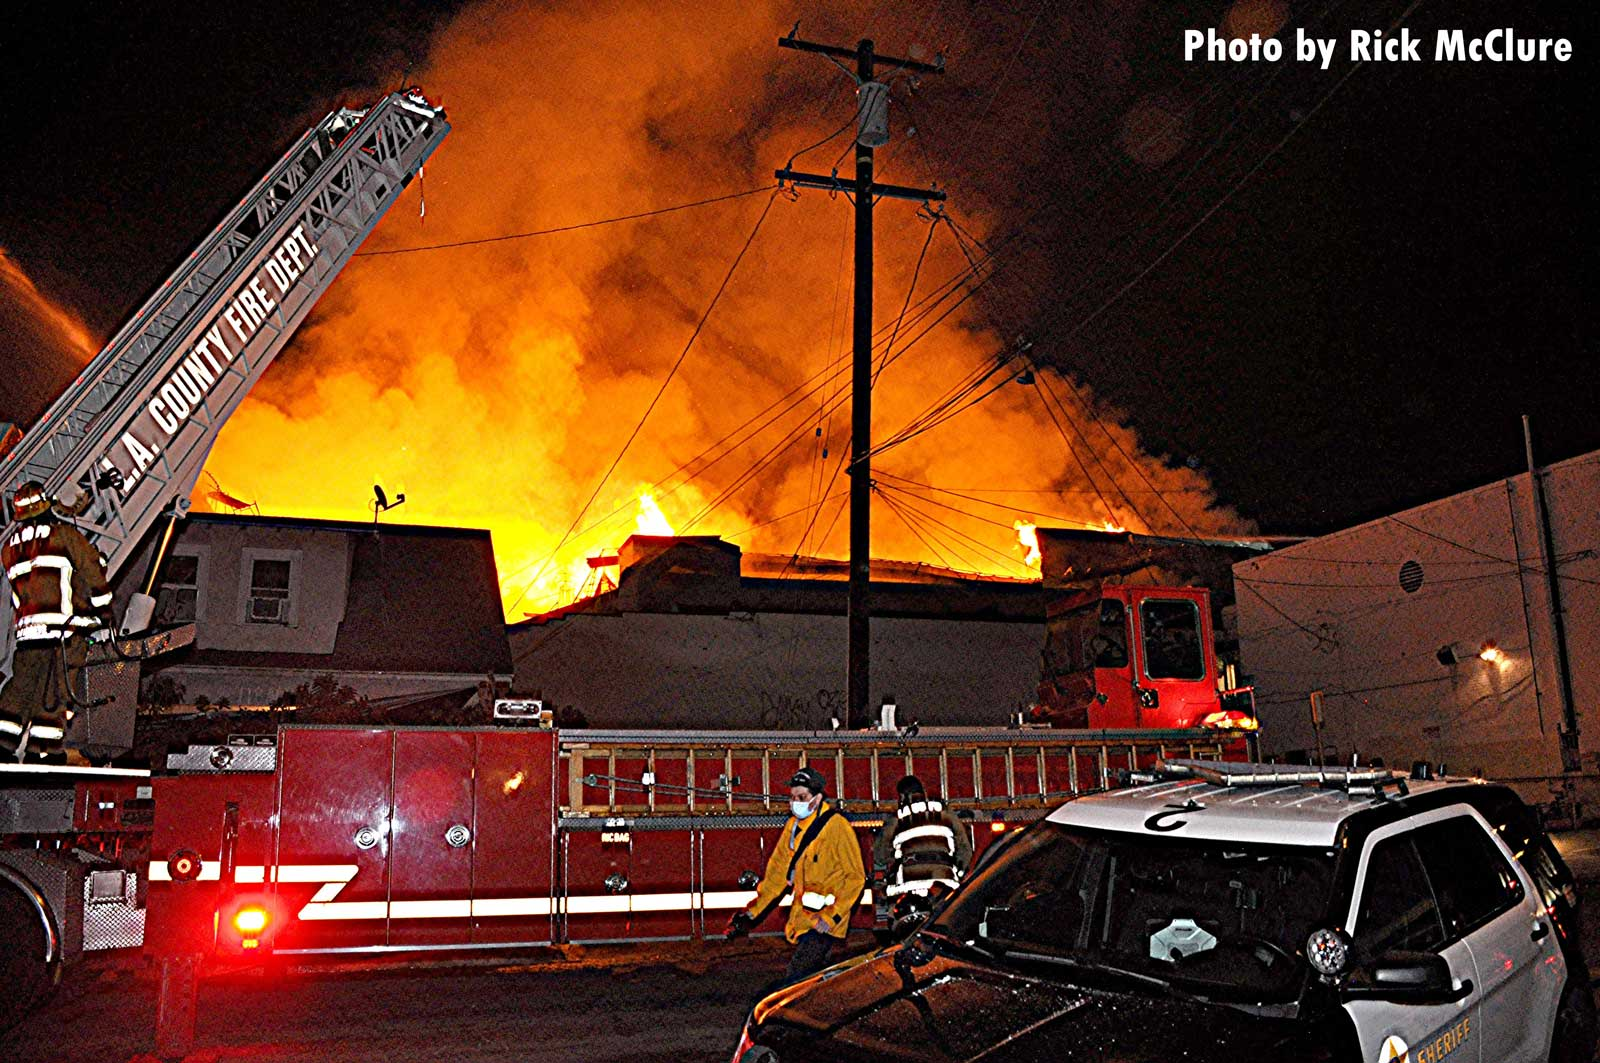 Fire apparatus at major East L.A. fire